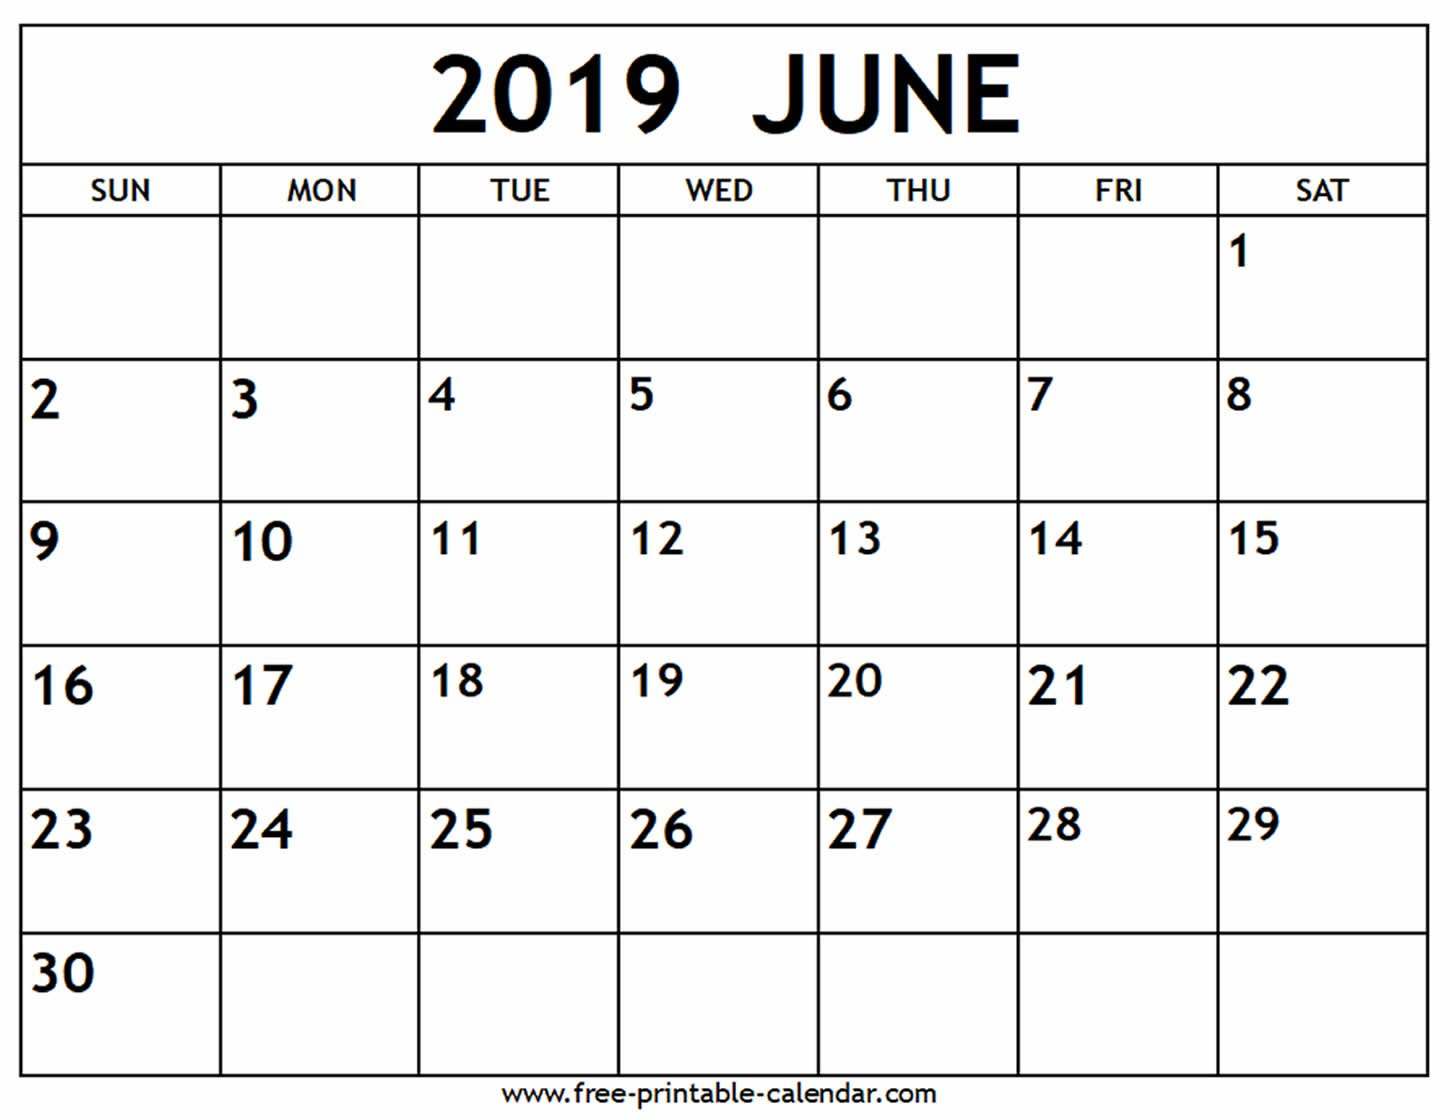 June 2019 Calendar - Free-Printable-Calendar Calendar Of 2019 June